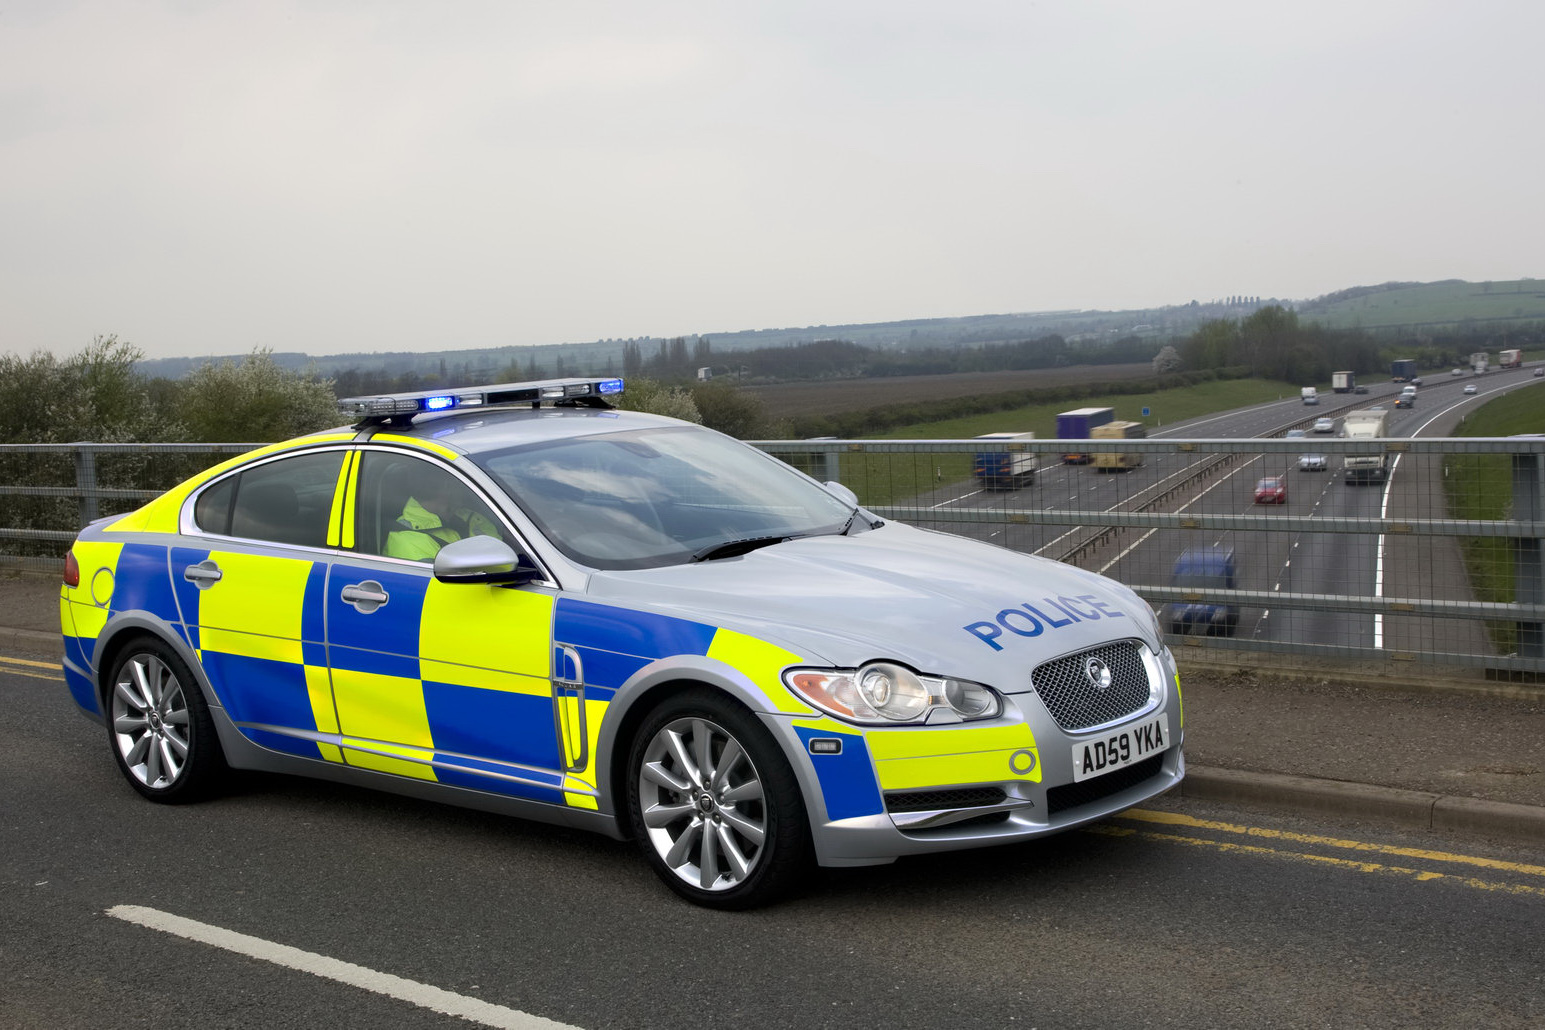 First Jaguar Xf Police Cars Go On Duty In The Uk